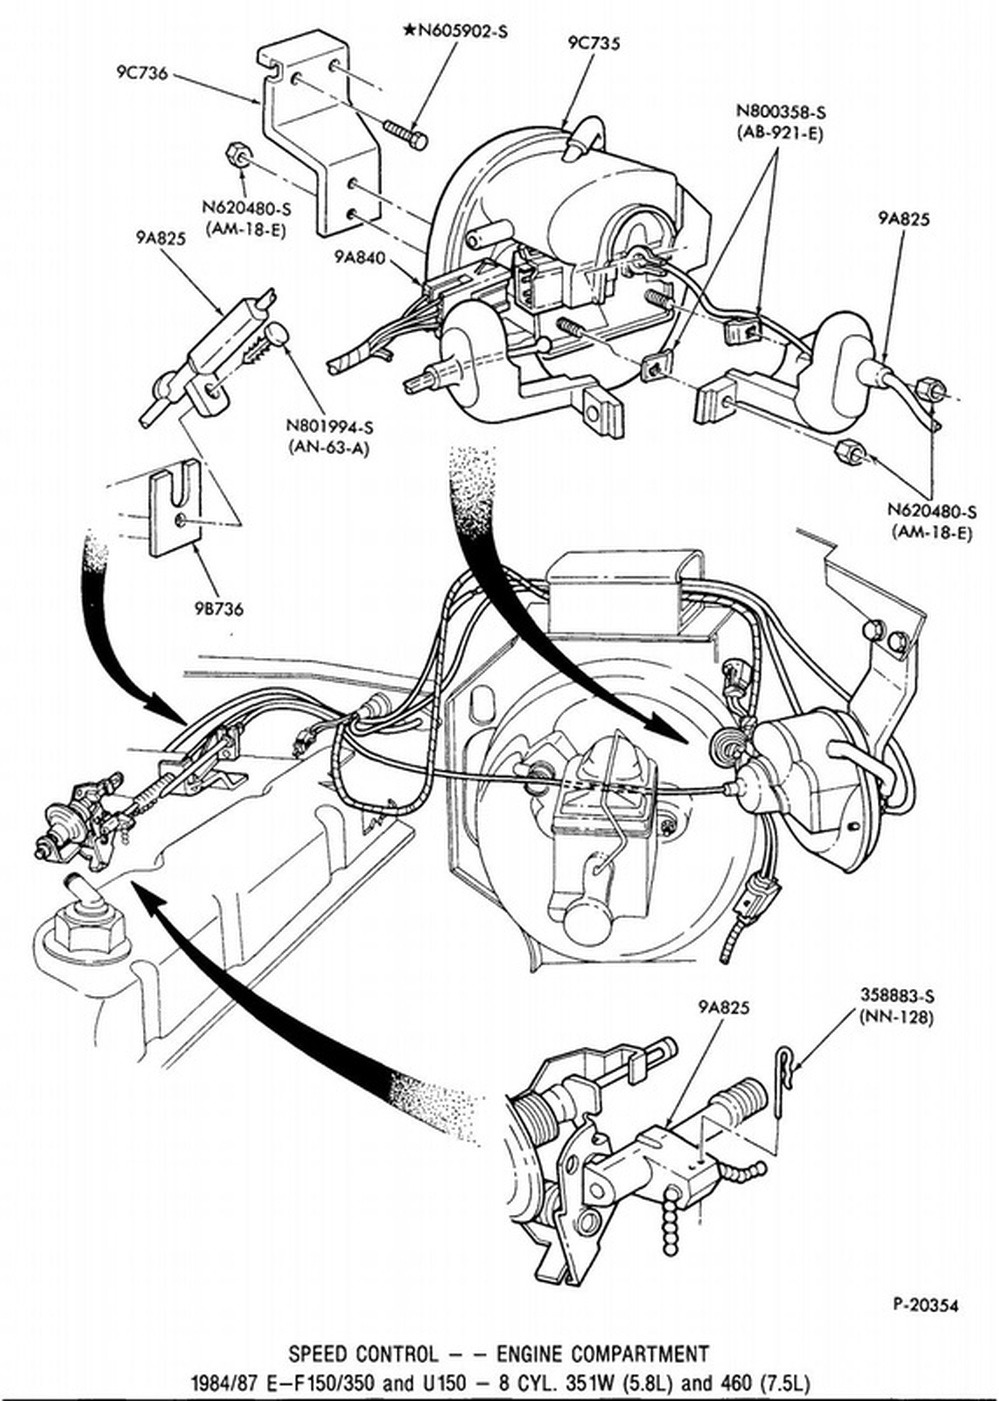 1995 ford f150 front suspension diagram home network wiring 79 end great installation of bronco diagrams html imageresizertool com 2000 f 150 axle